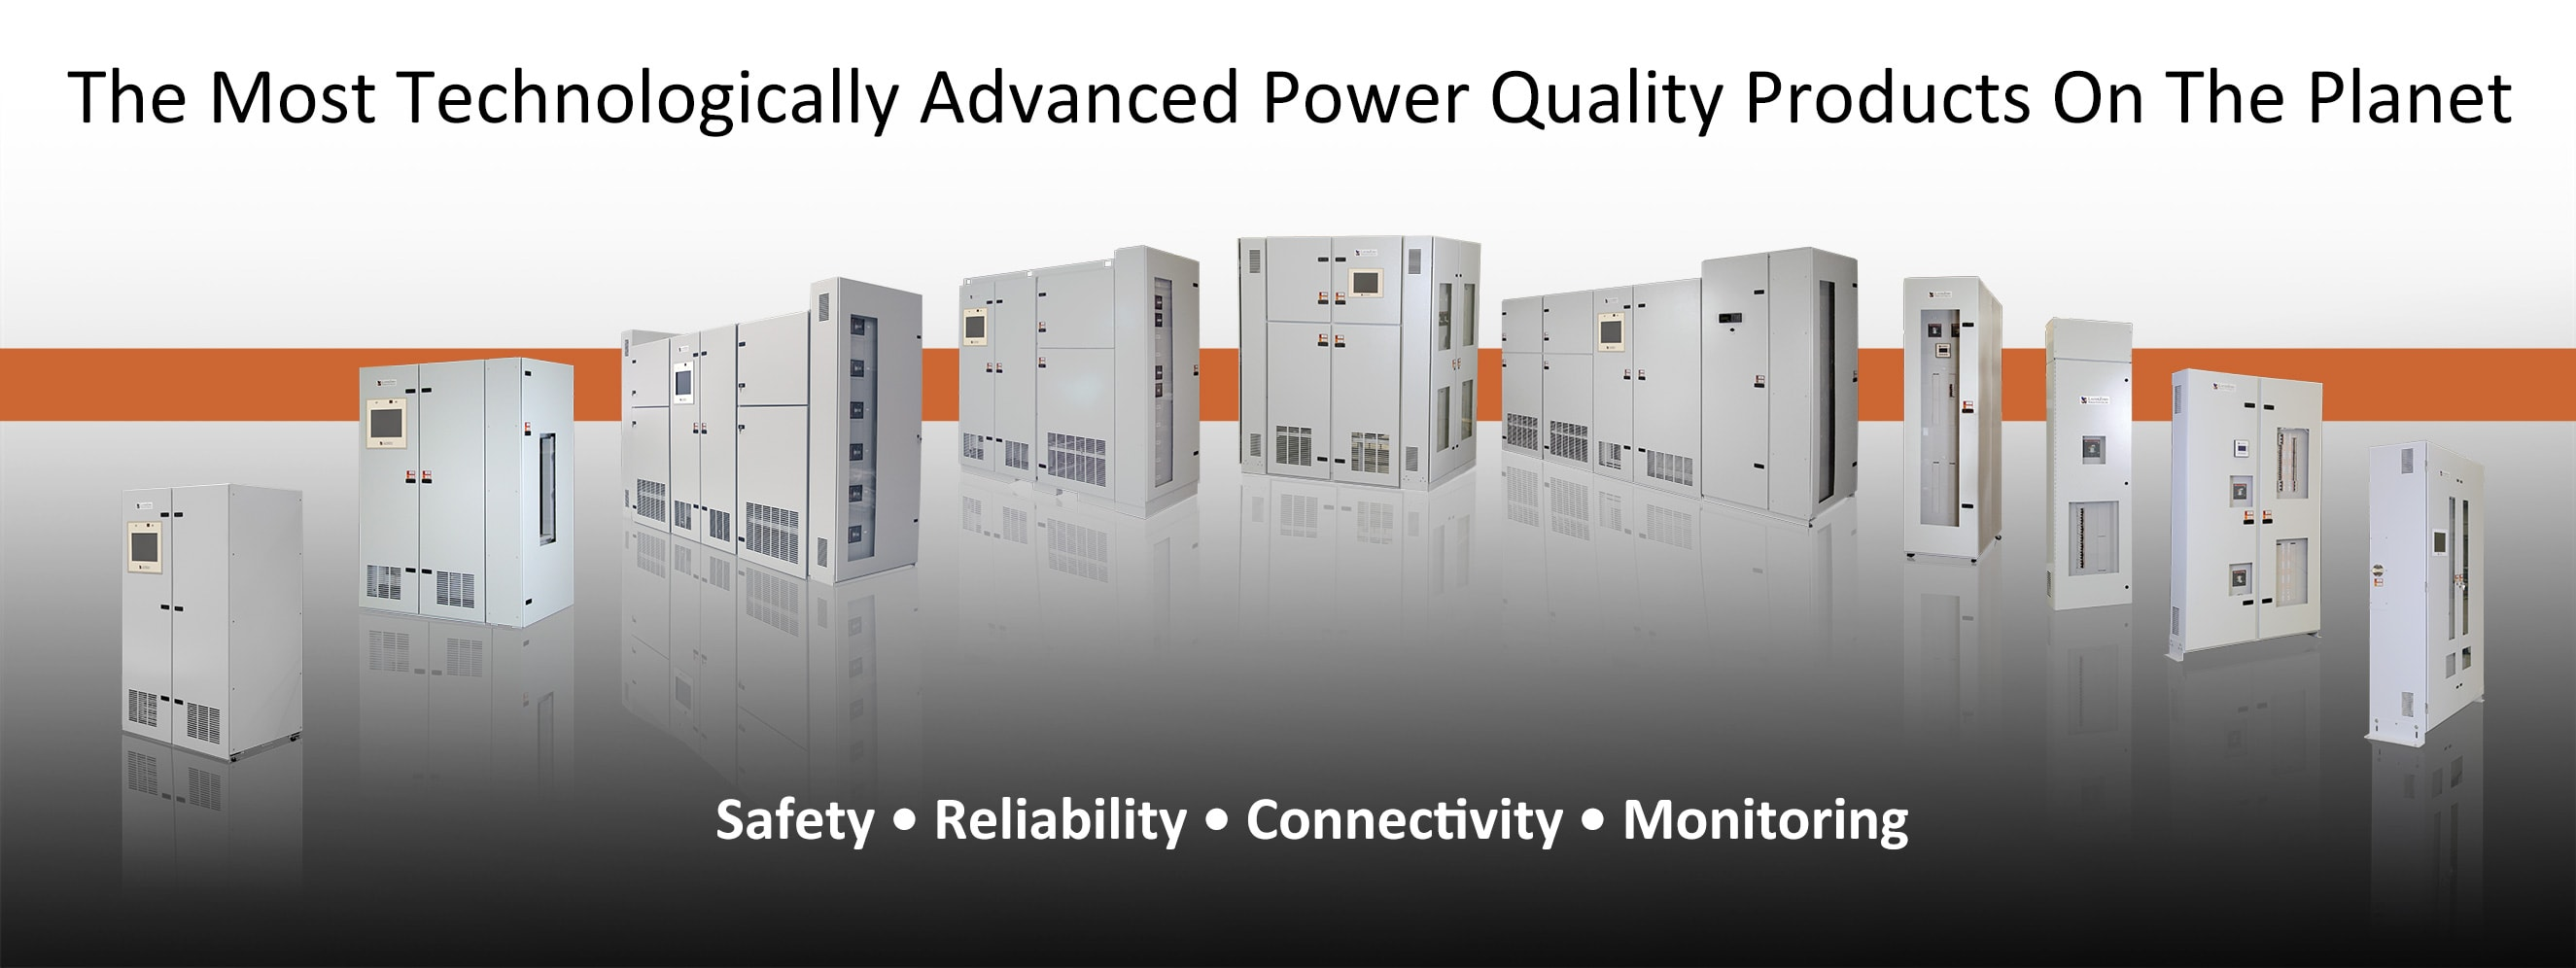 The Most Technologically Advanced Power Quality Products On The Planet